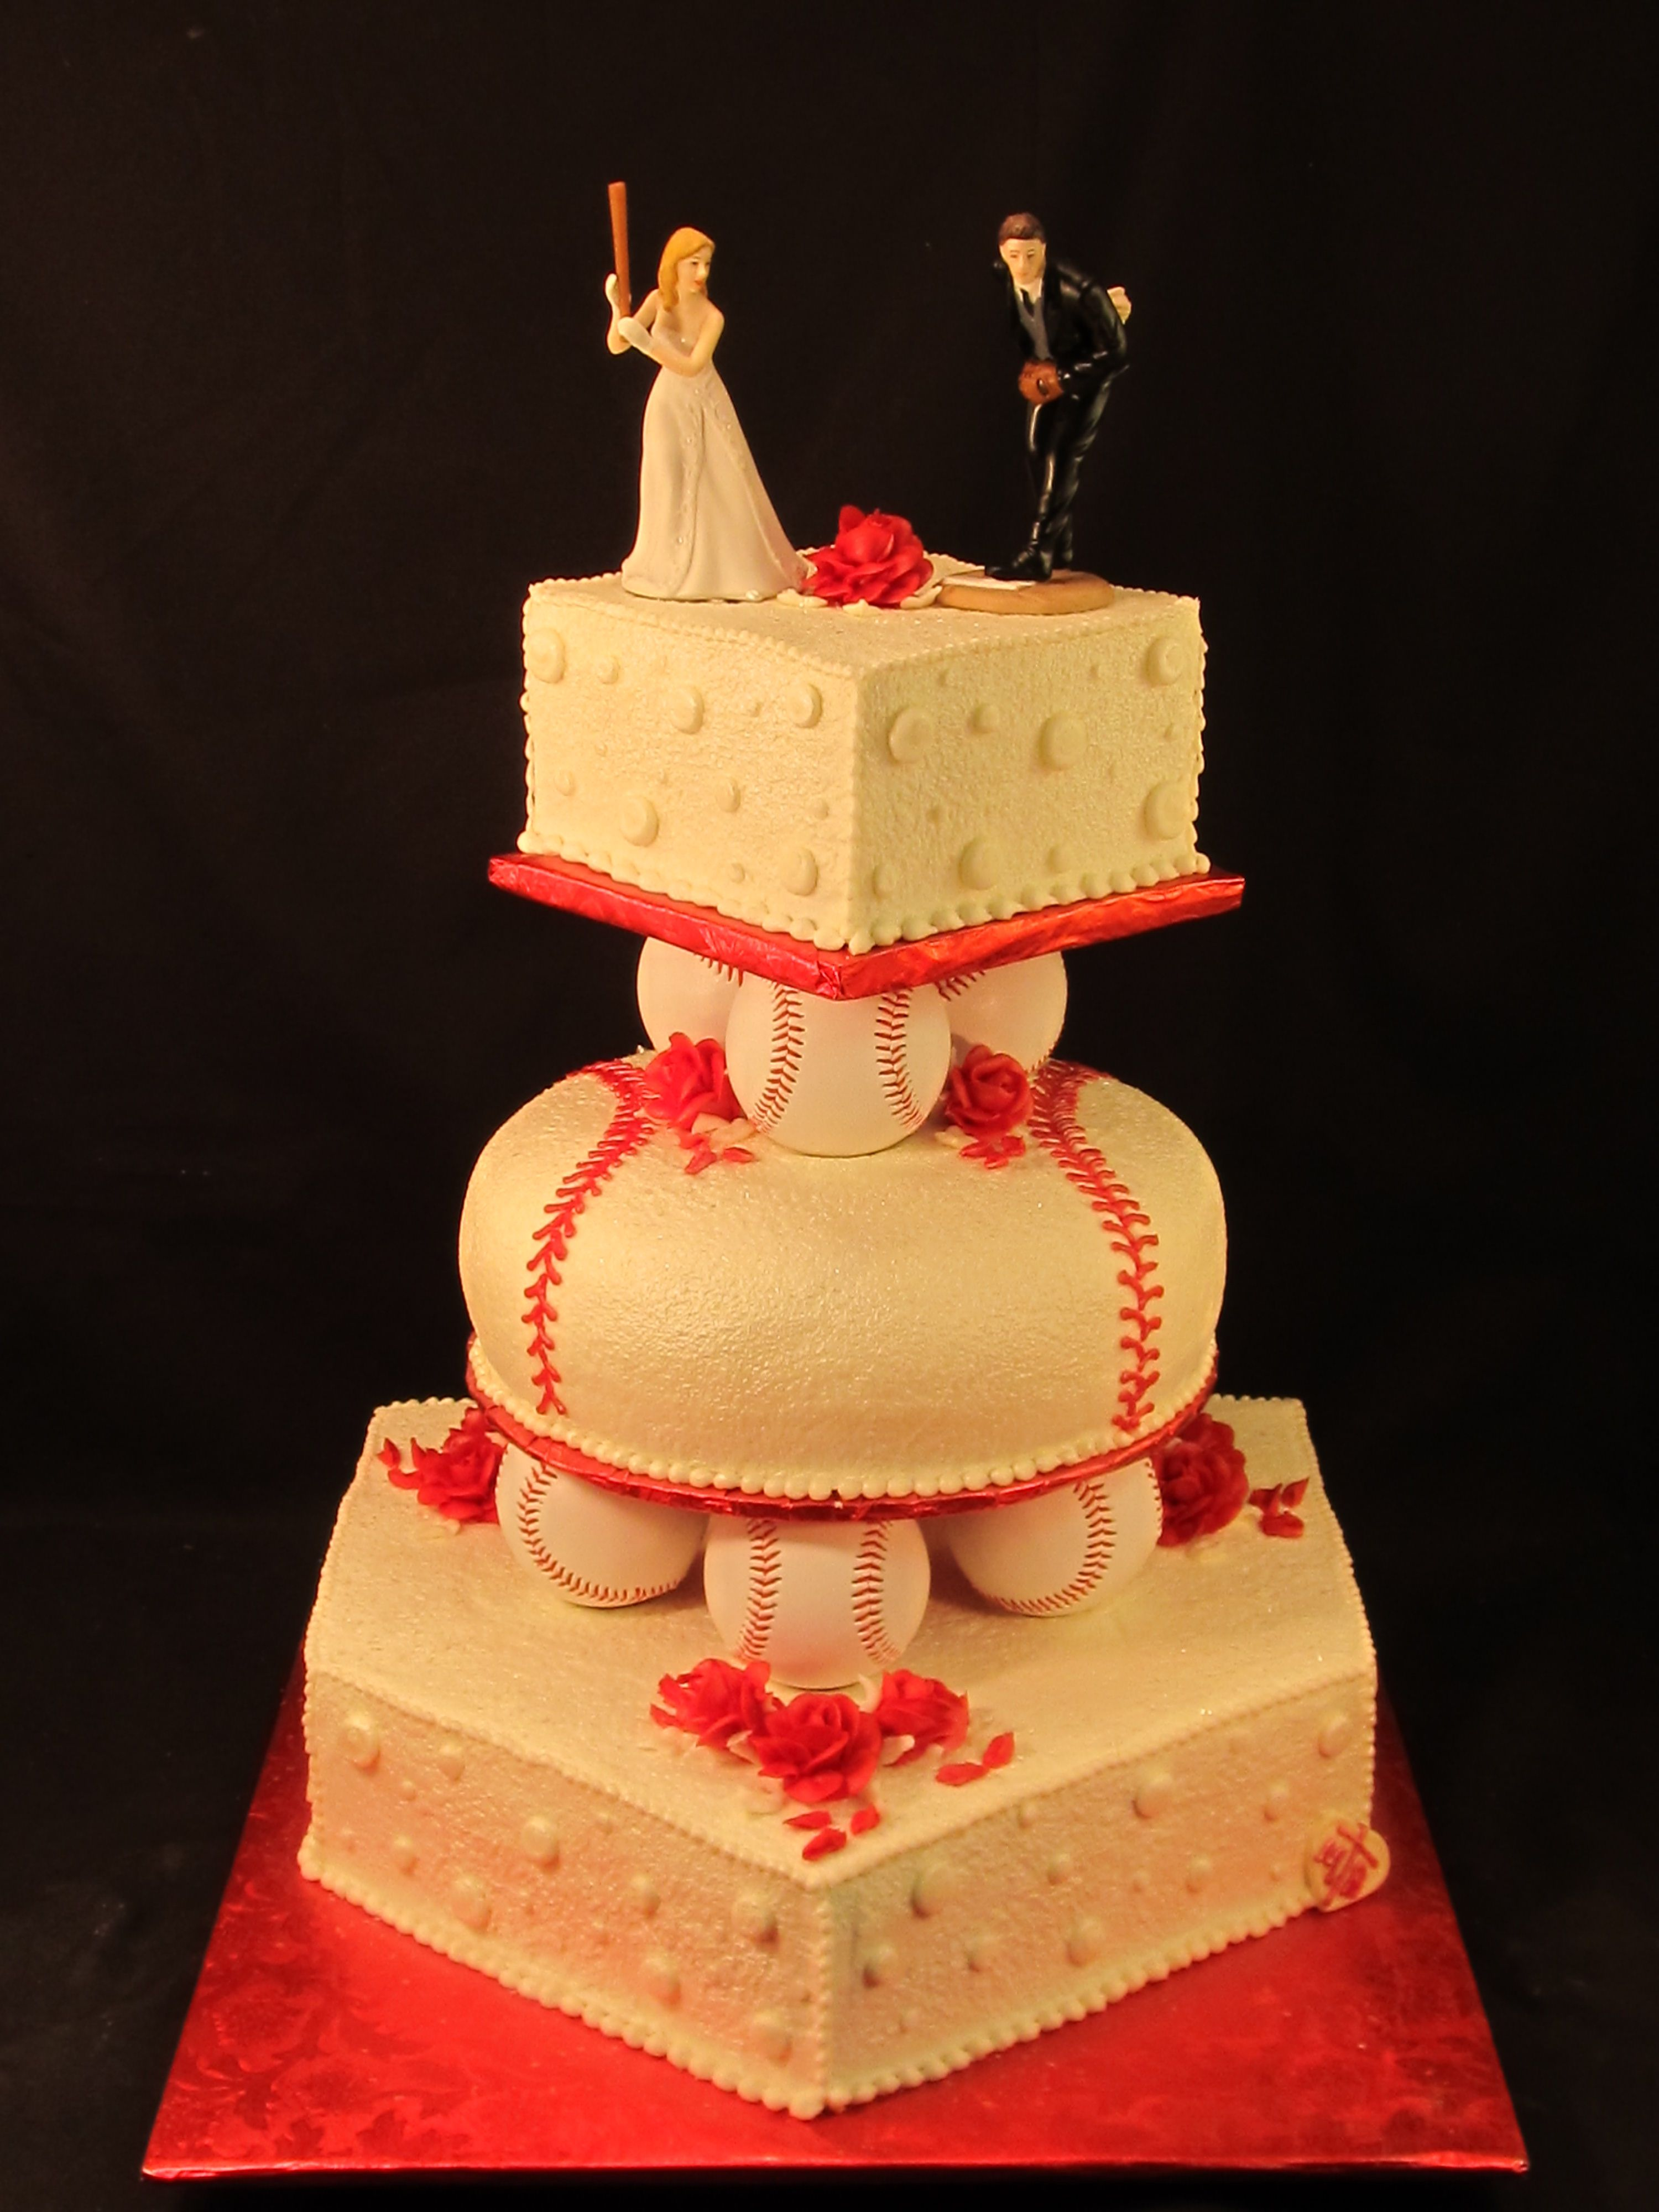 baseball themed wedding cakes | The premier bakery for your wedding ...